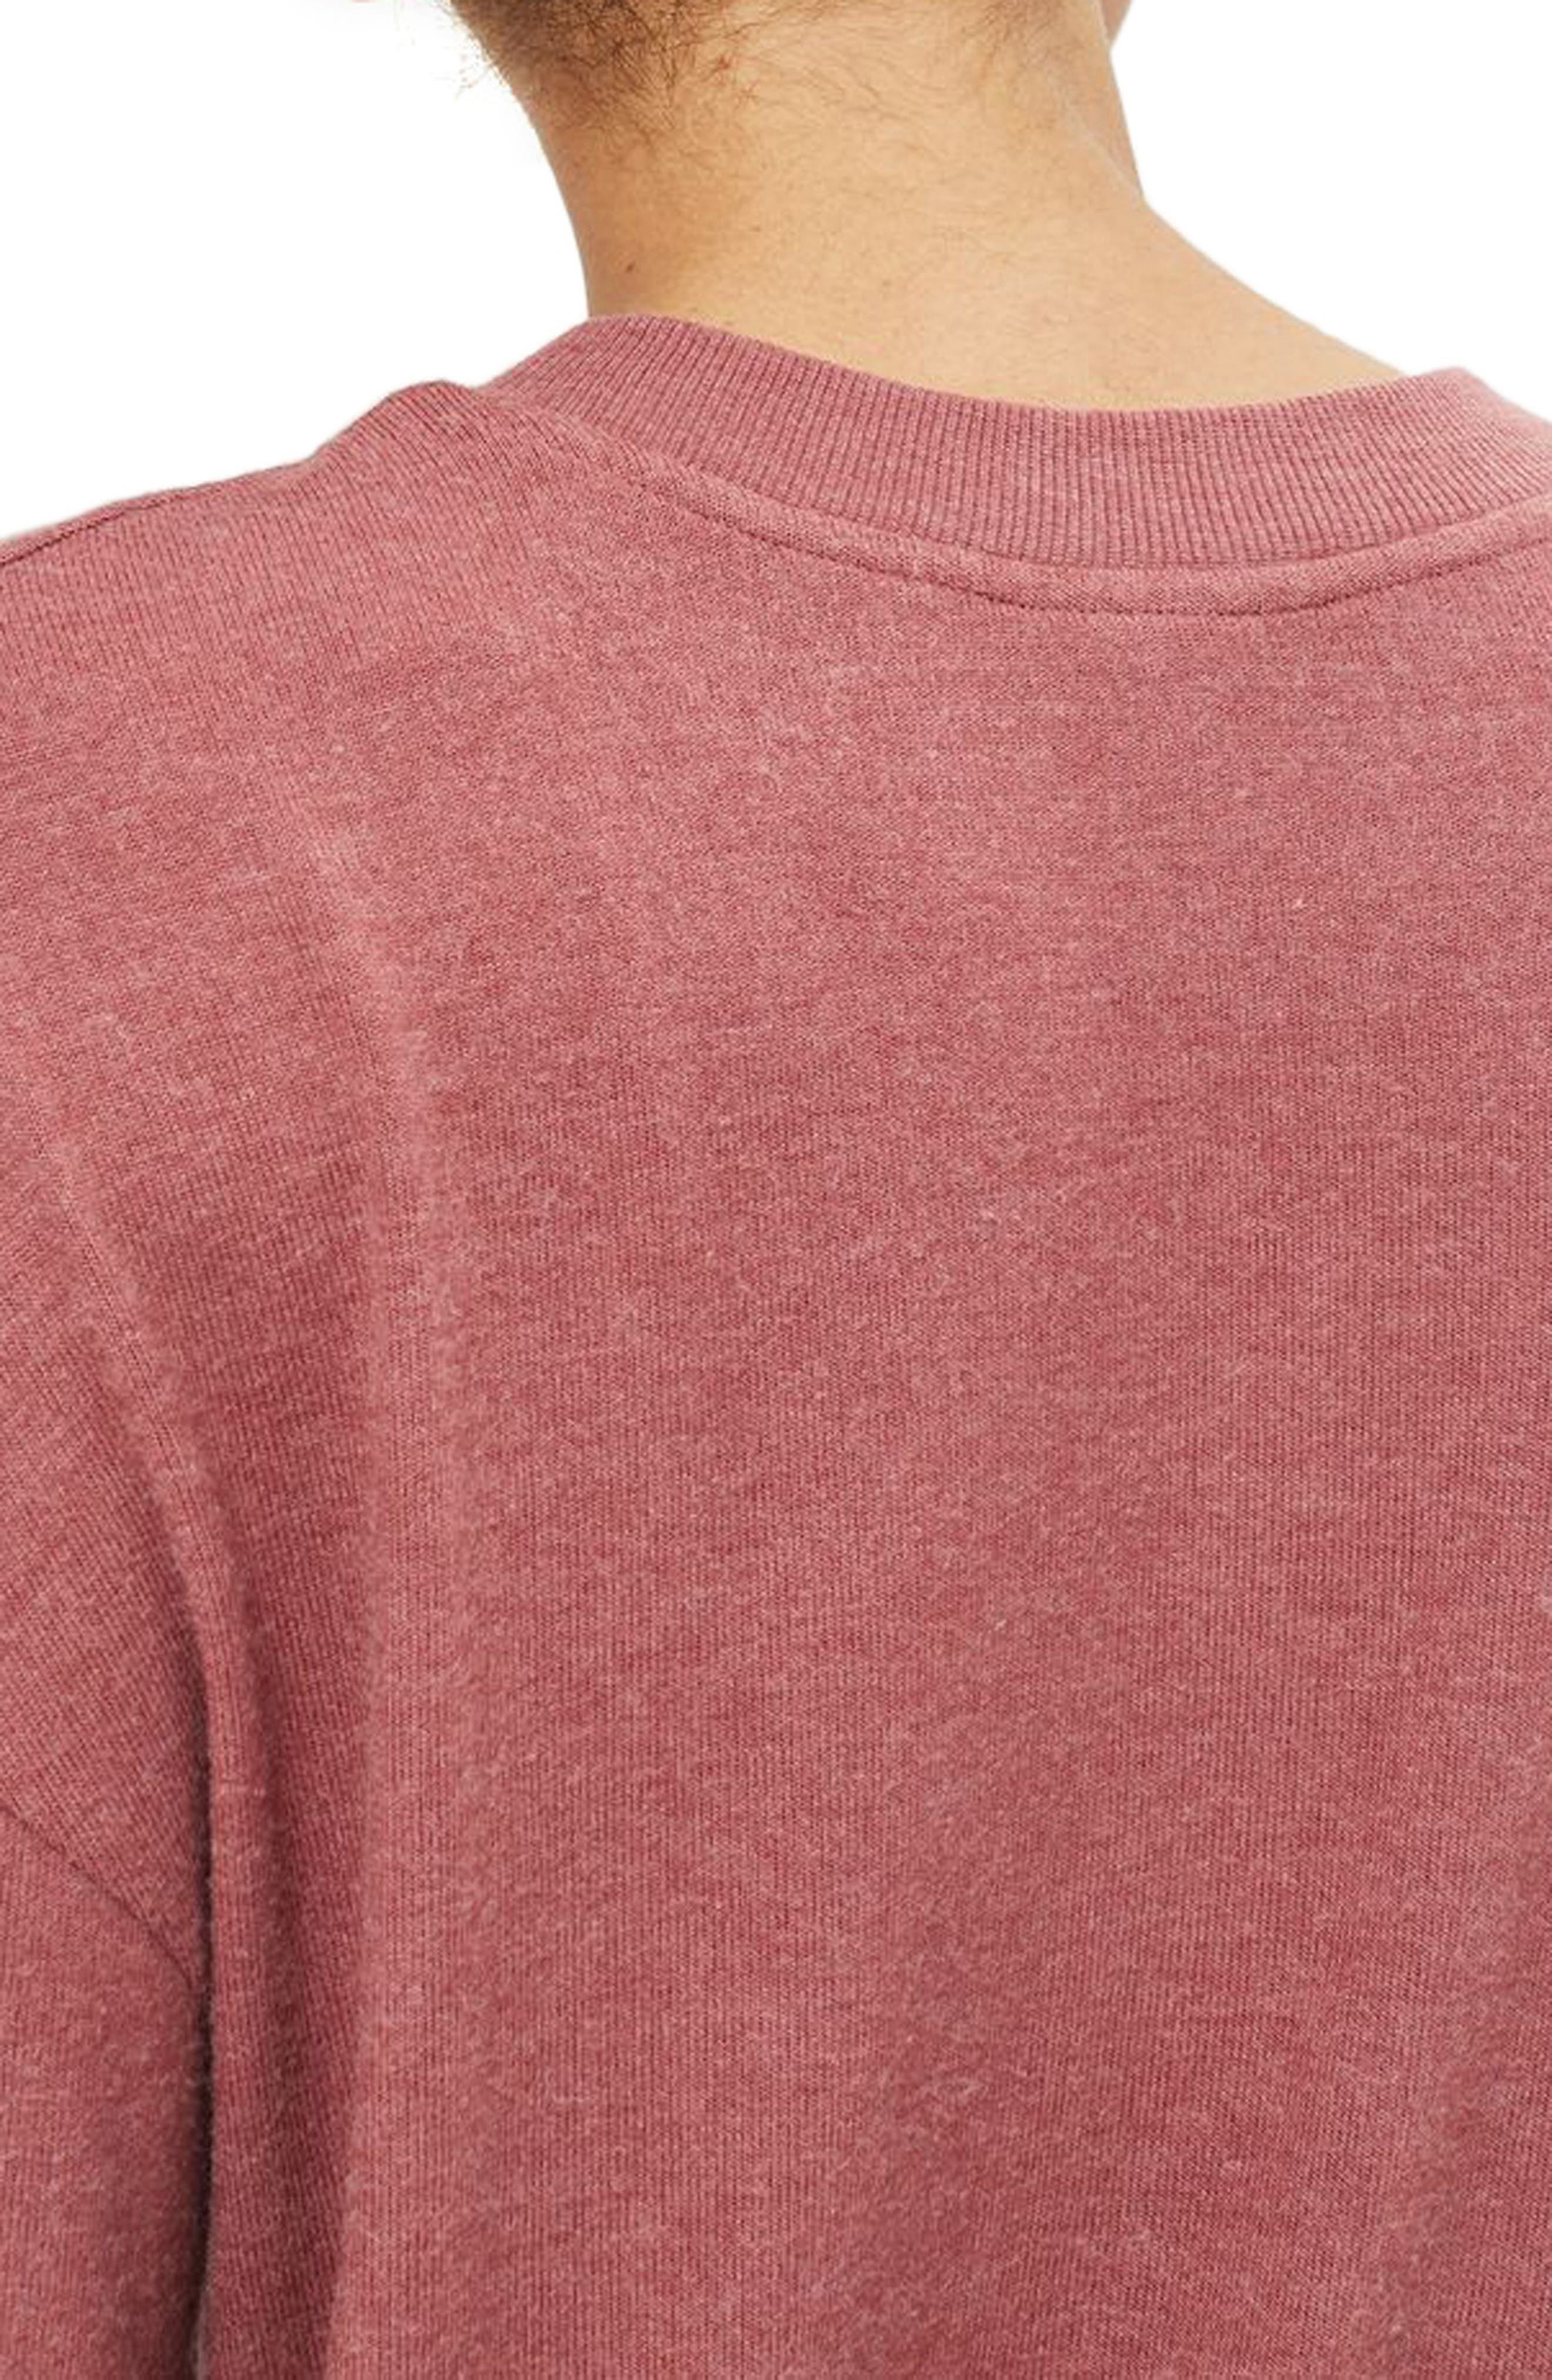 Rose Sweatshirt,                             Alternate thumbnail 2, color,                             Pink